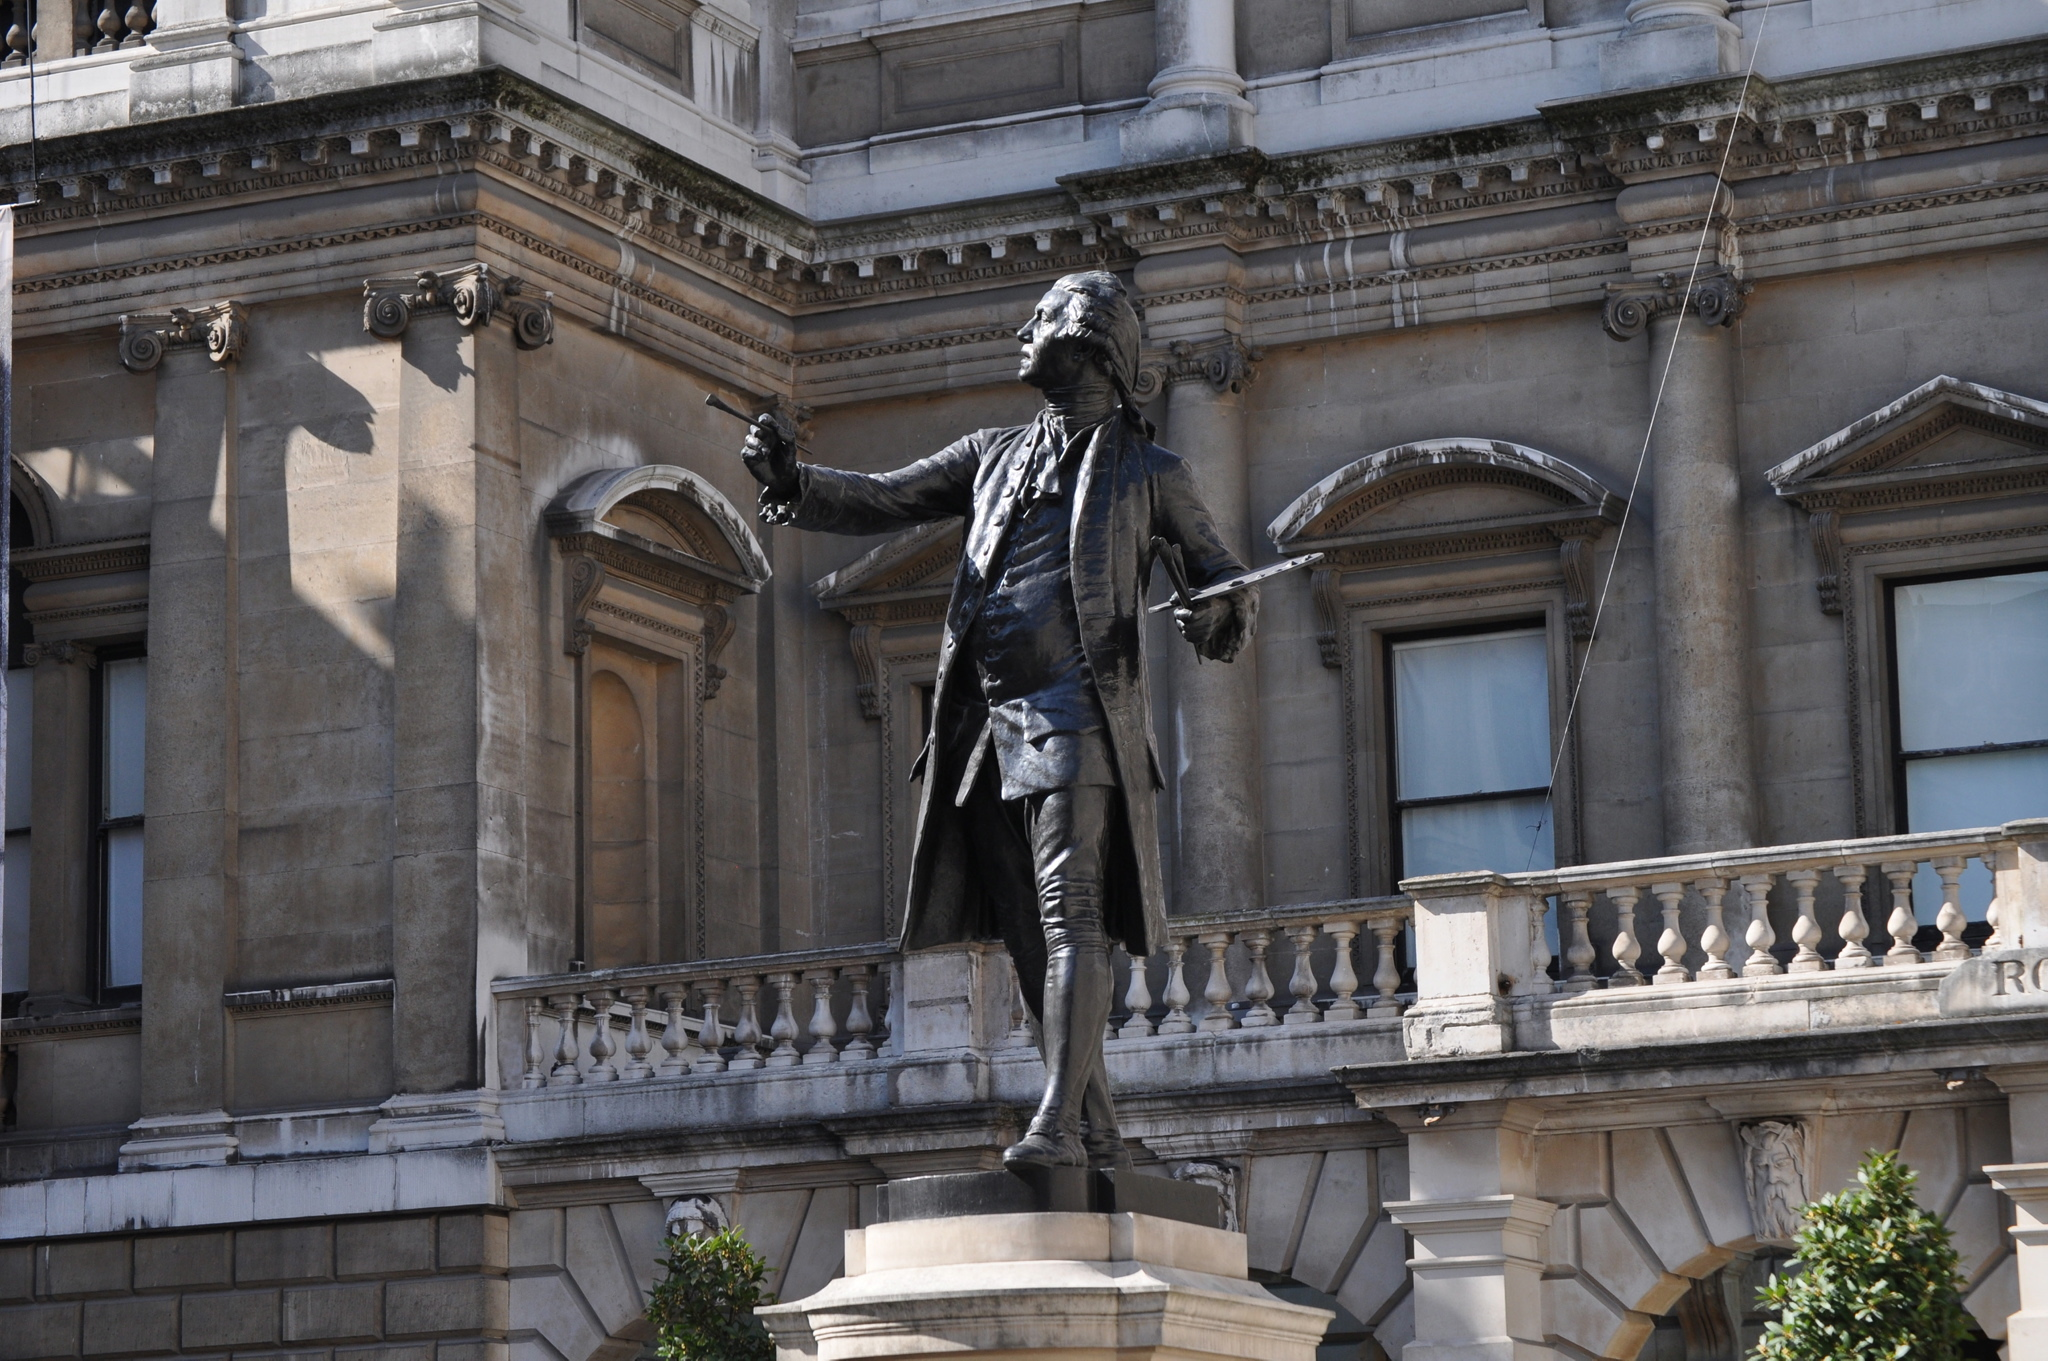 Royal Academy of Arts Statue and exterior